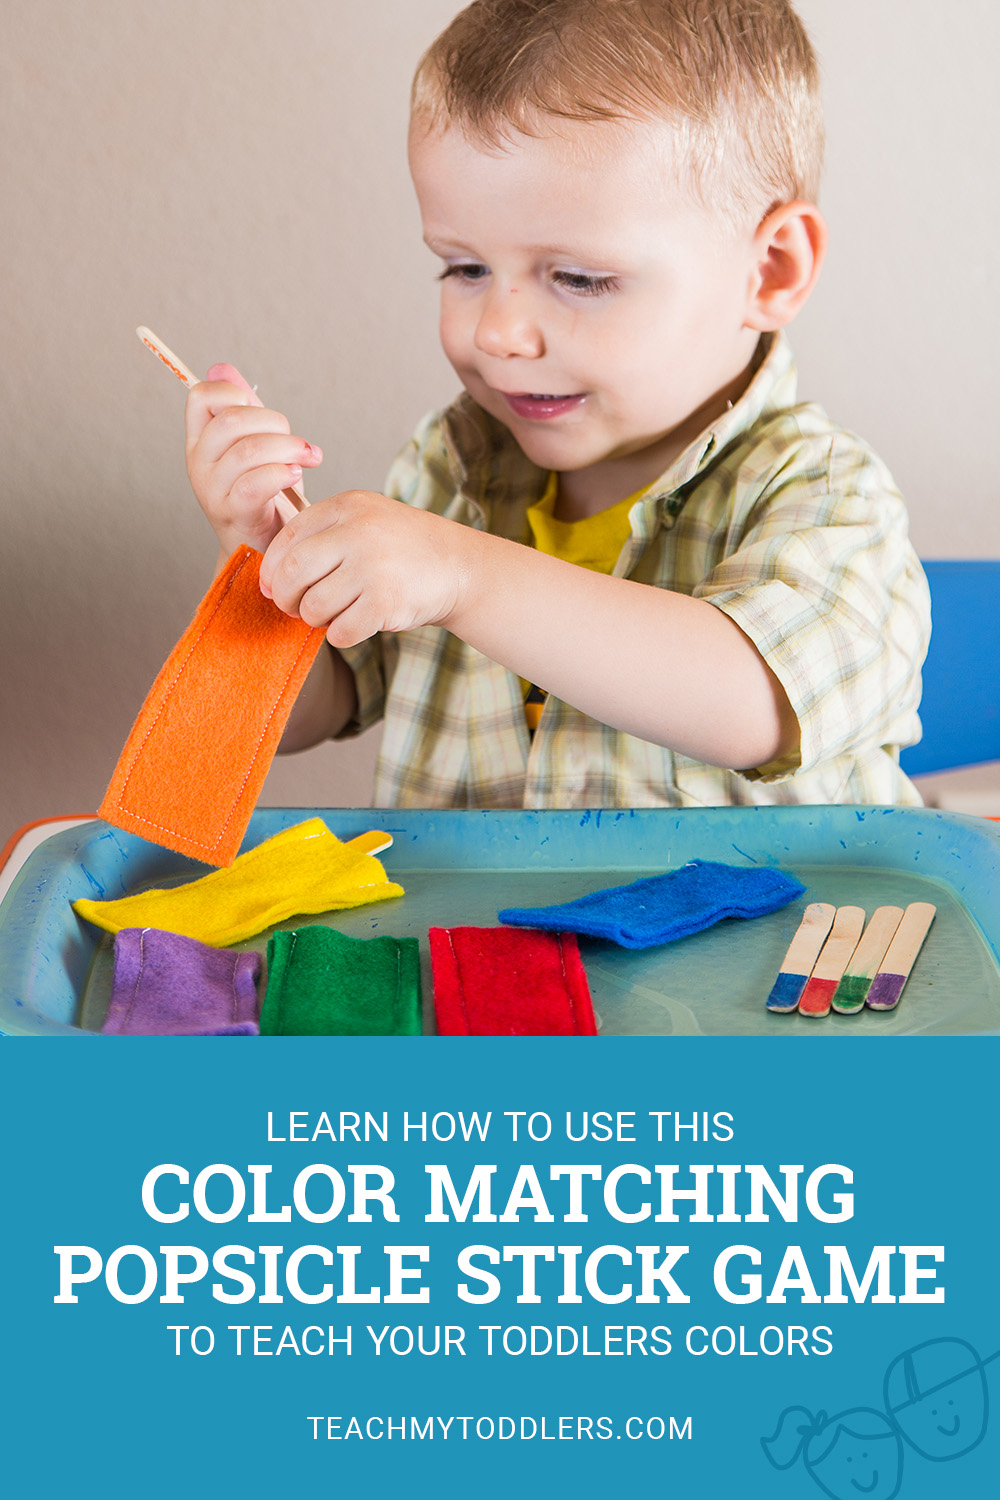 Learn how to use this color matching popsicle game to teach your toddlers colors